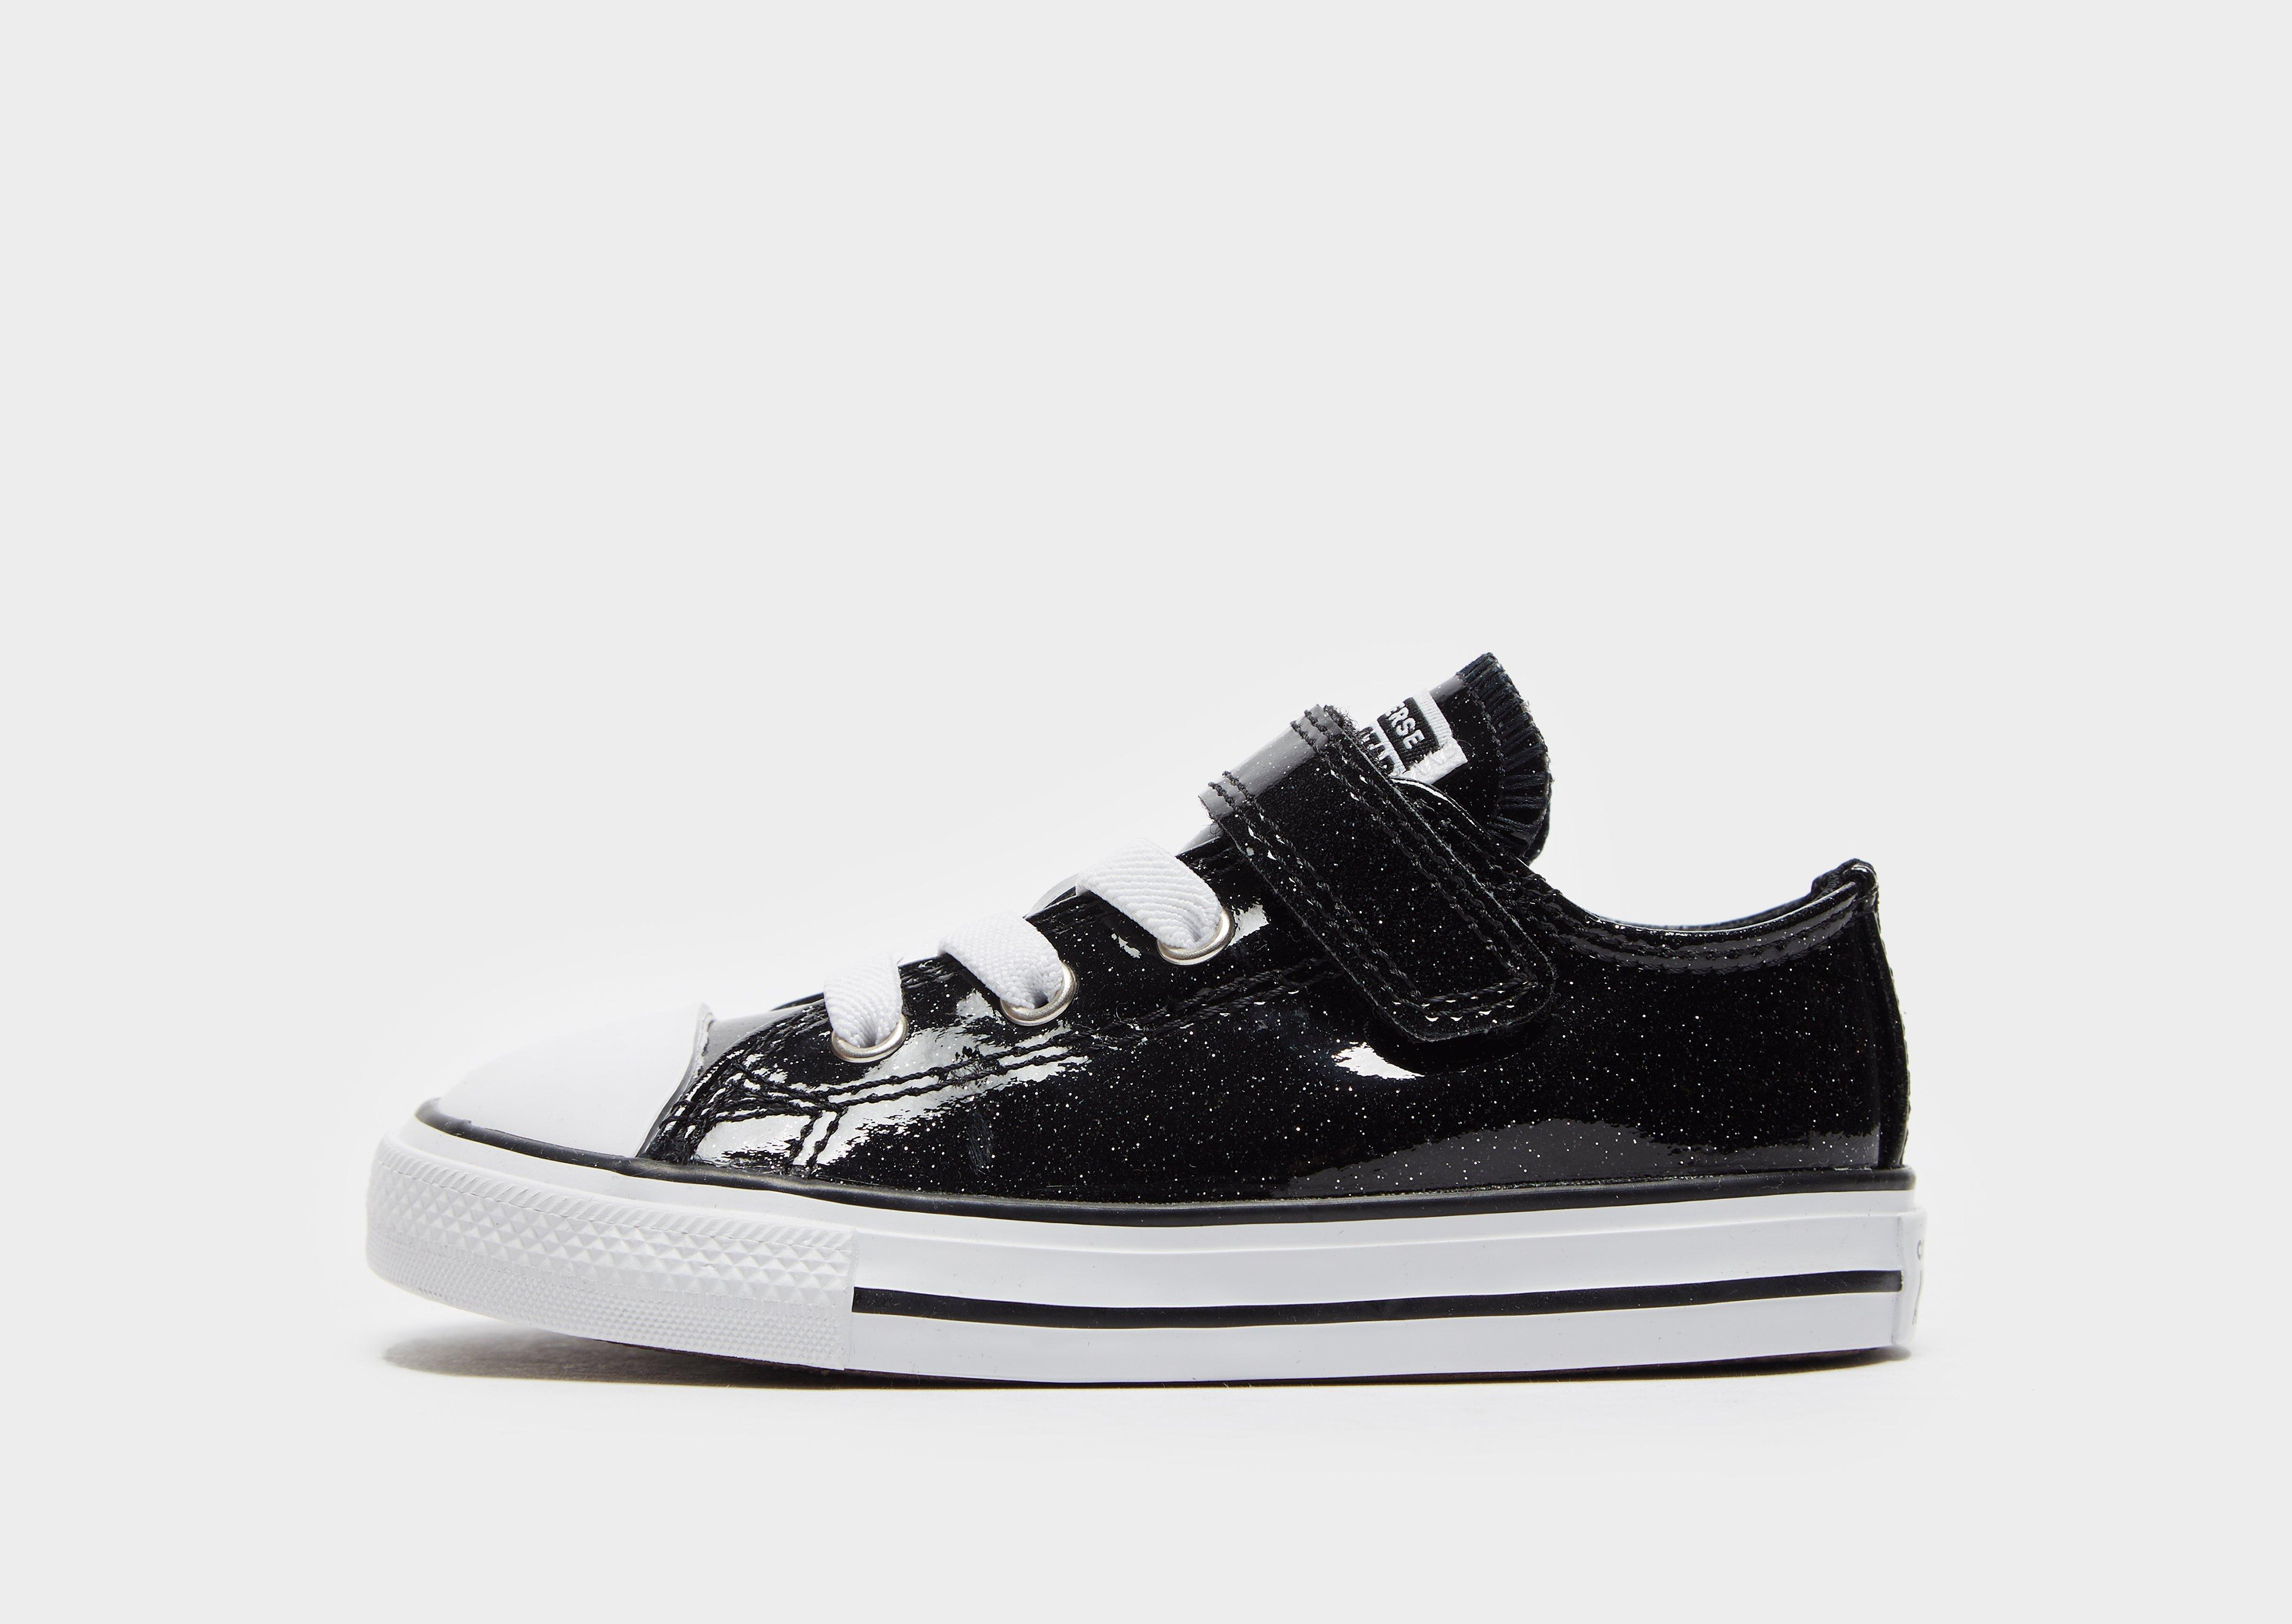 Converse 742888 All Star Velcro Ox for Infants Jungle Green REDUCED 30%